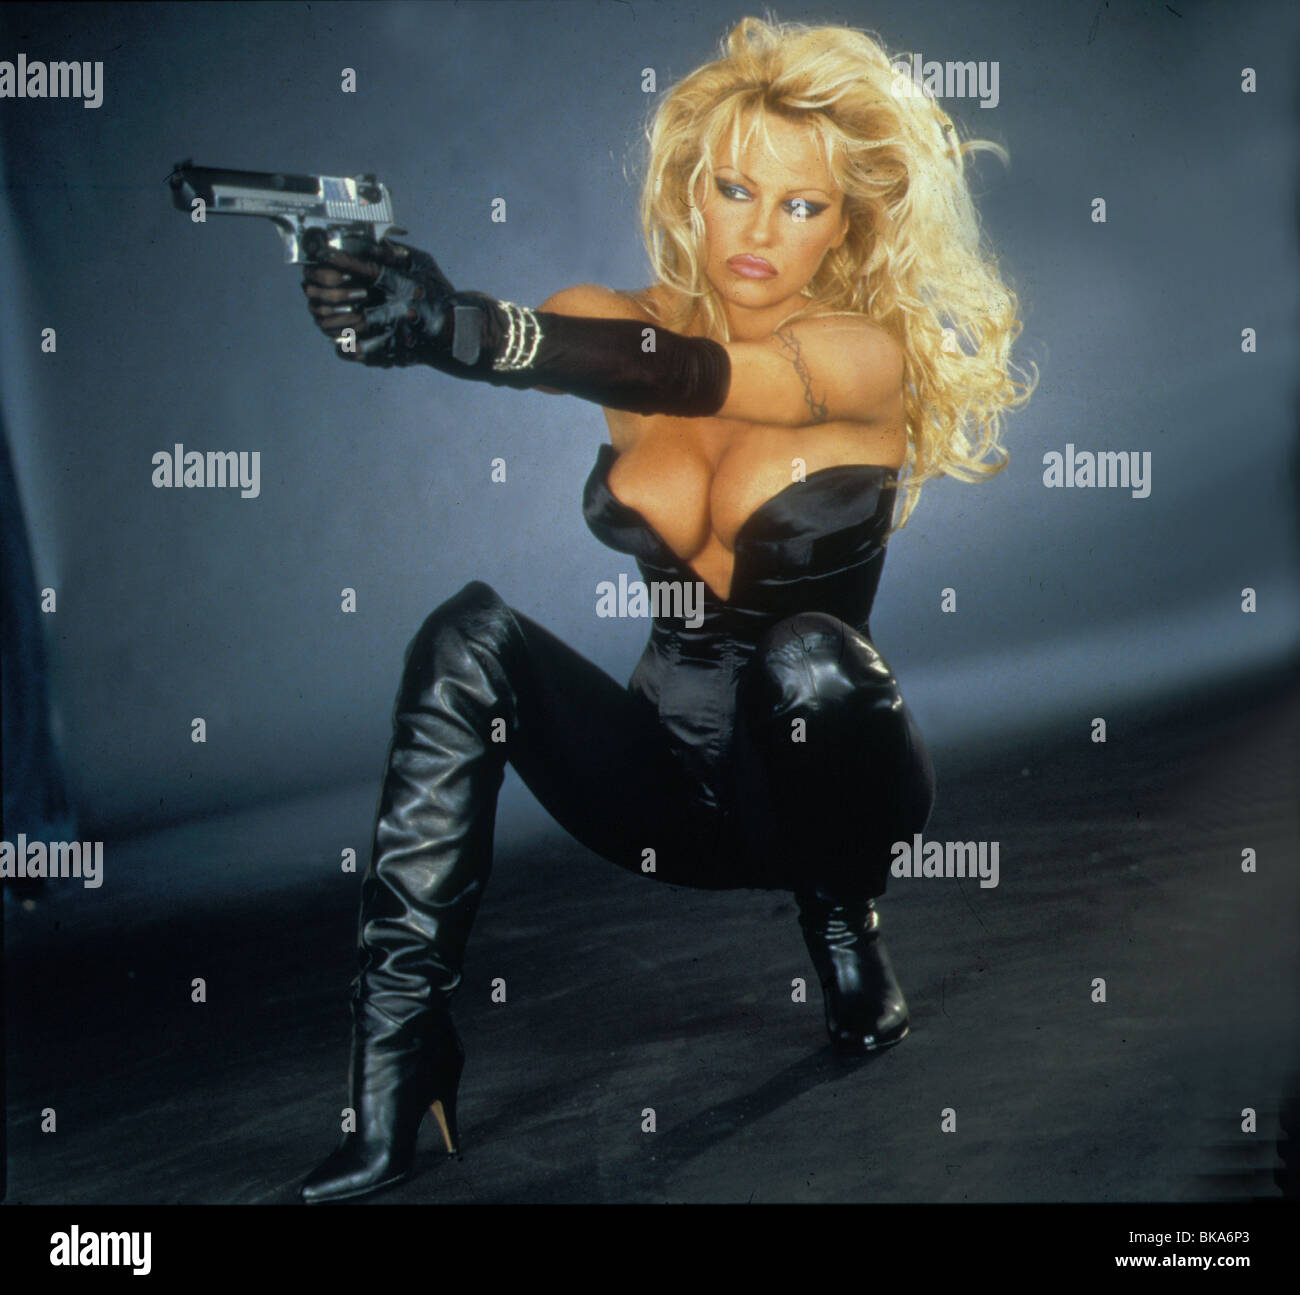 BARB WIRE -1995 PAMELA ANDERSON - Stock Image